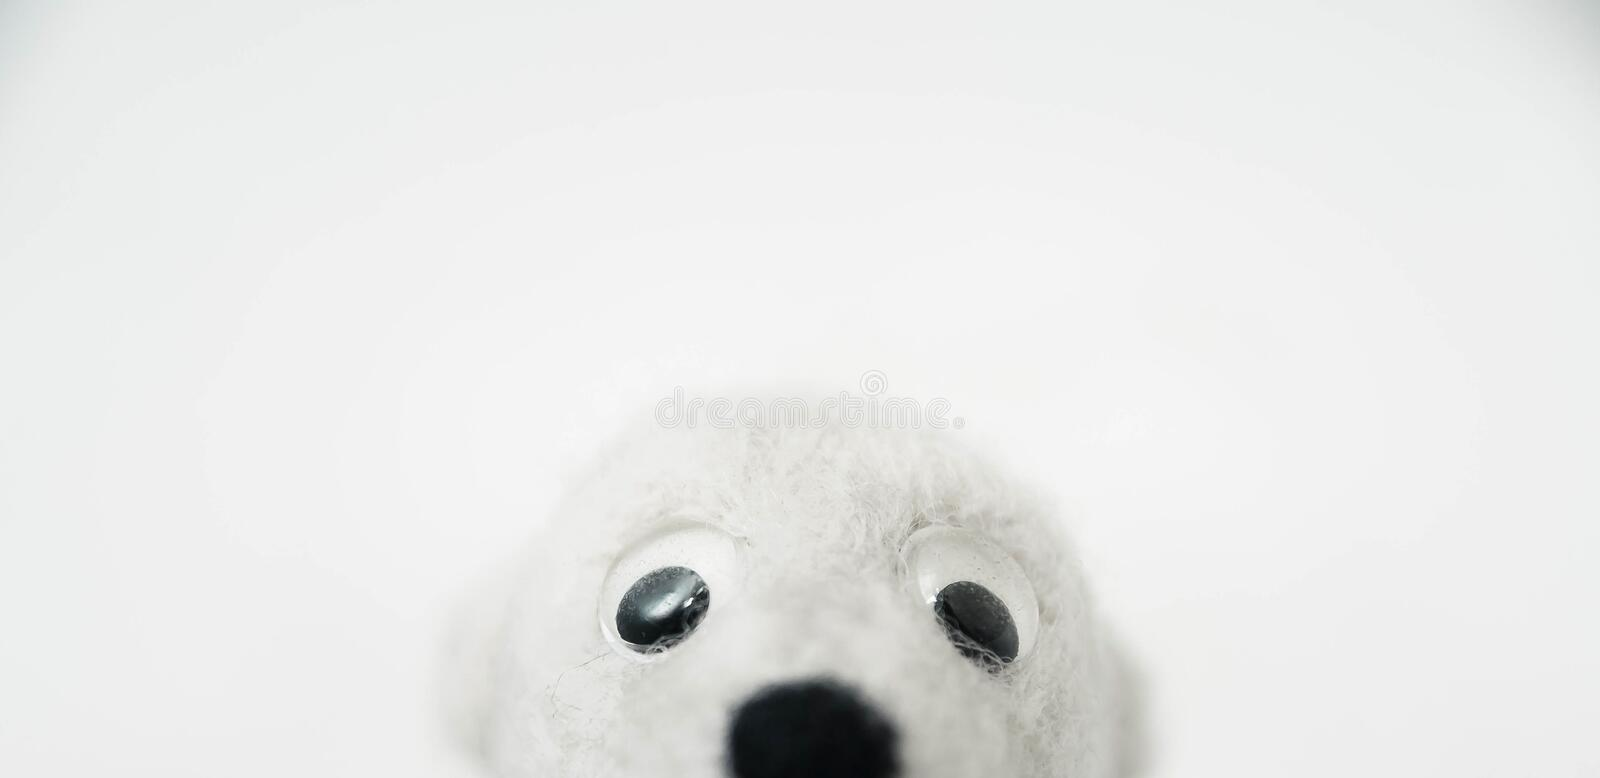 Toy polar bear made of felted wool looking out of the bottom of the frame on white background. A toy polar bear made of felted wool looking out of the bottom of stock photos